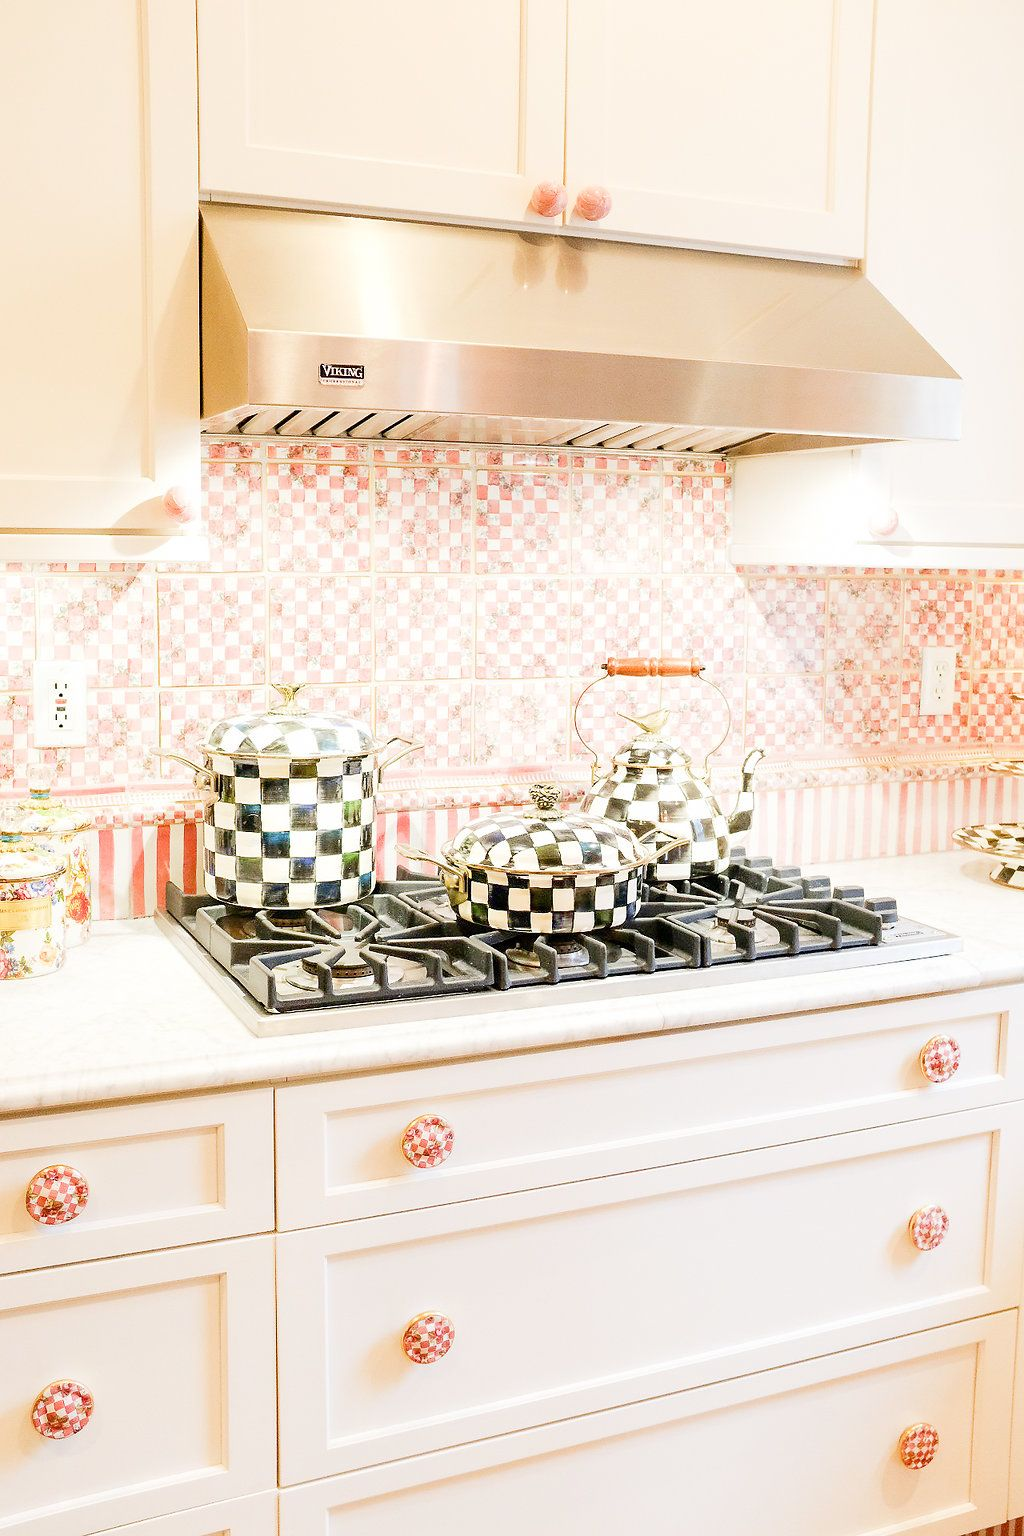 The Tour Of The Mackenzie Childs Farmhouse Featuring The Kitchen Chronicles Of Frivolity Mackenzie Childs Kitchen Backsplash Designs Mckenzie And Childs